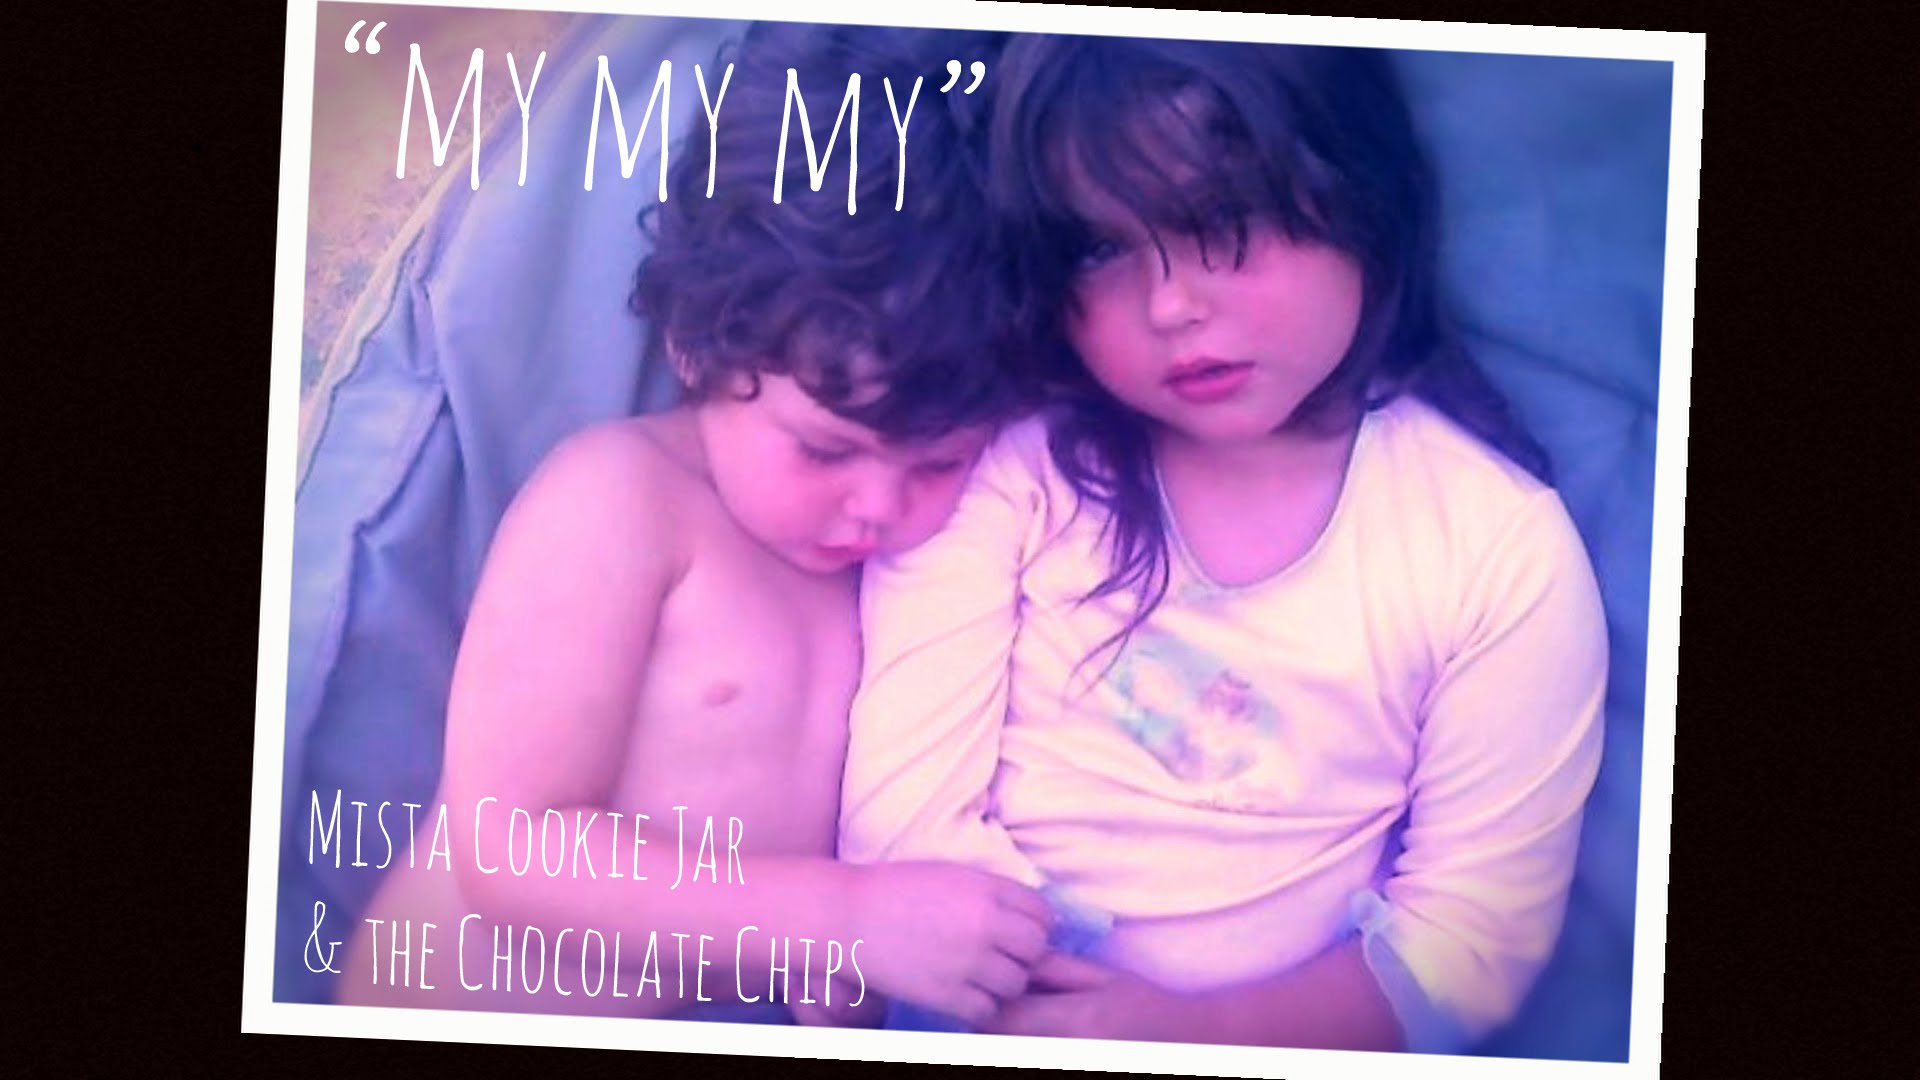 My My My | Mista Cookie Jar & the Chocolate Chips